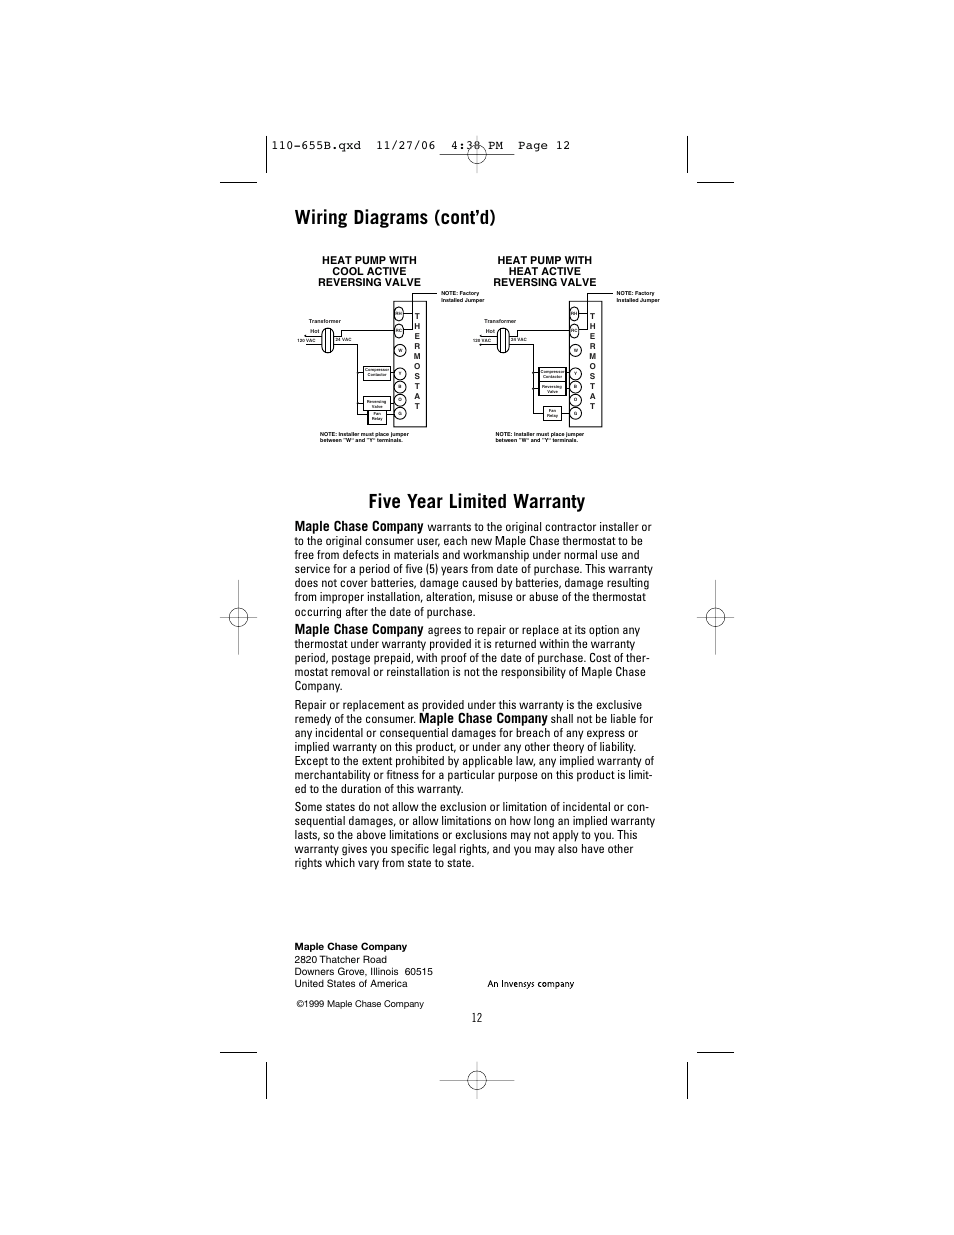 hight resolution of five year limited warranty wiring diagrams cont d maple chase company